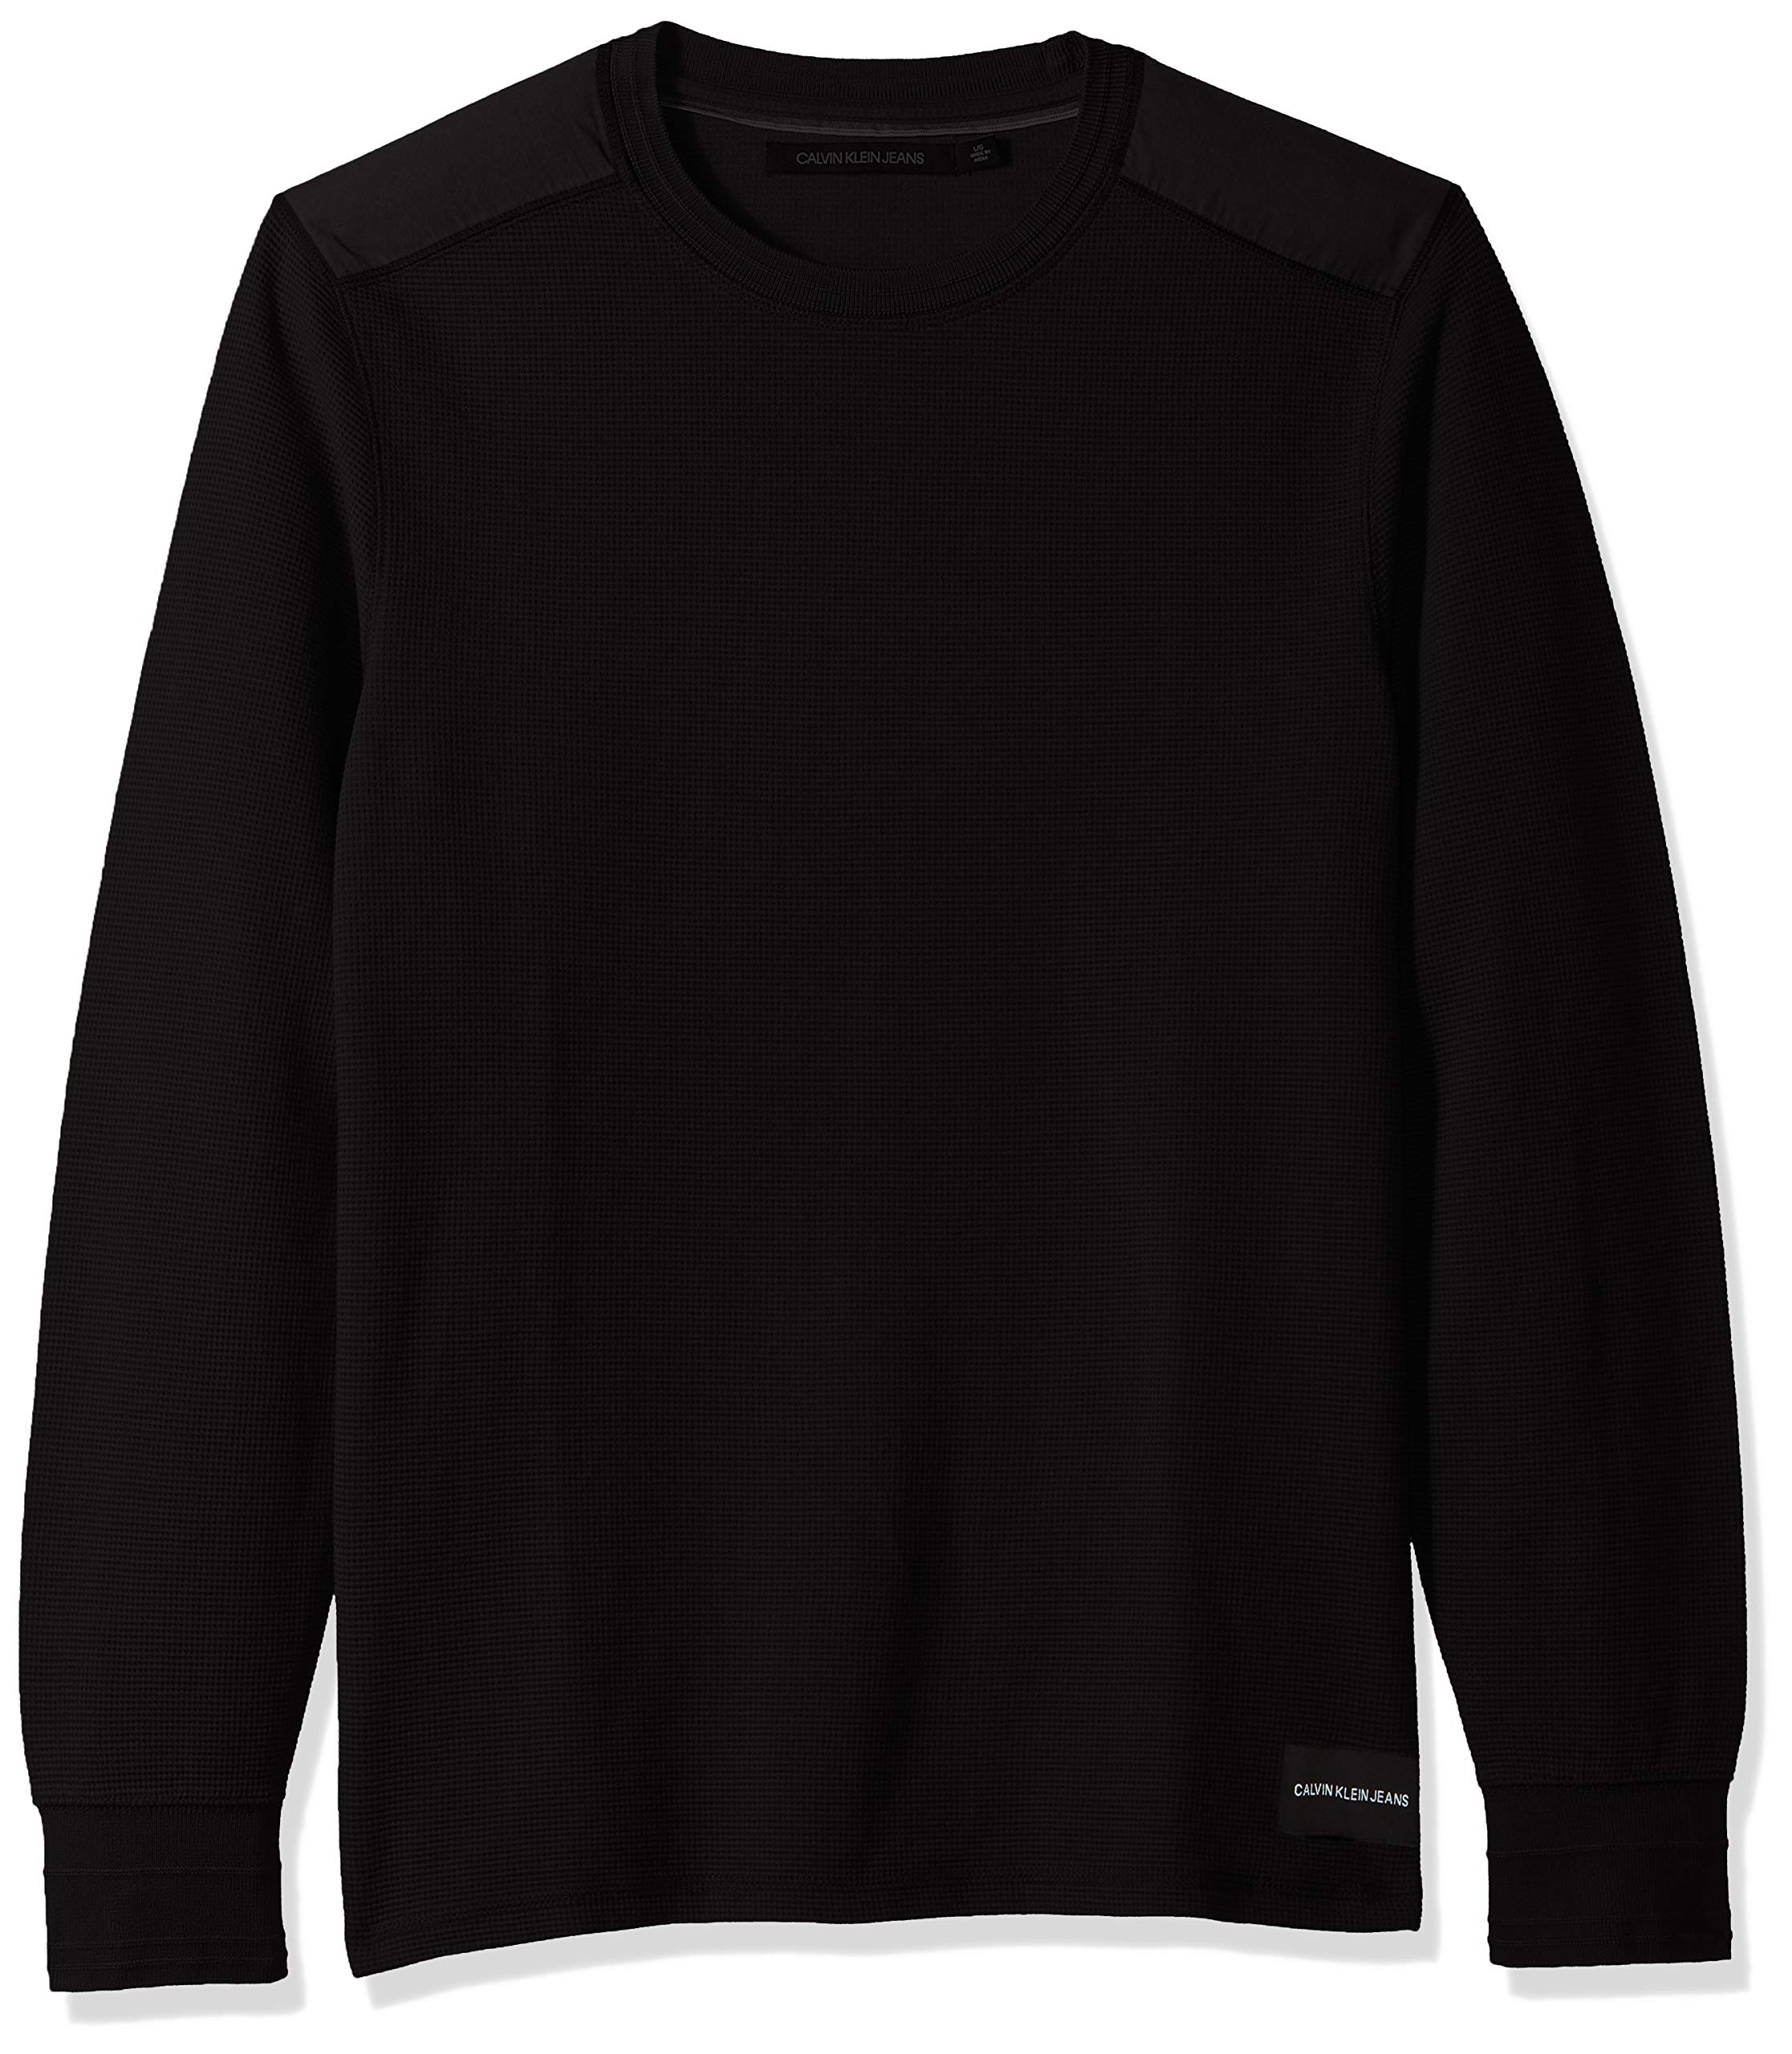 Calvin Klein Men's Long Sleeve Thermal Waffle Crew Neck Shirt, Black New, Small by Calvin Klein